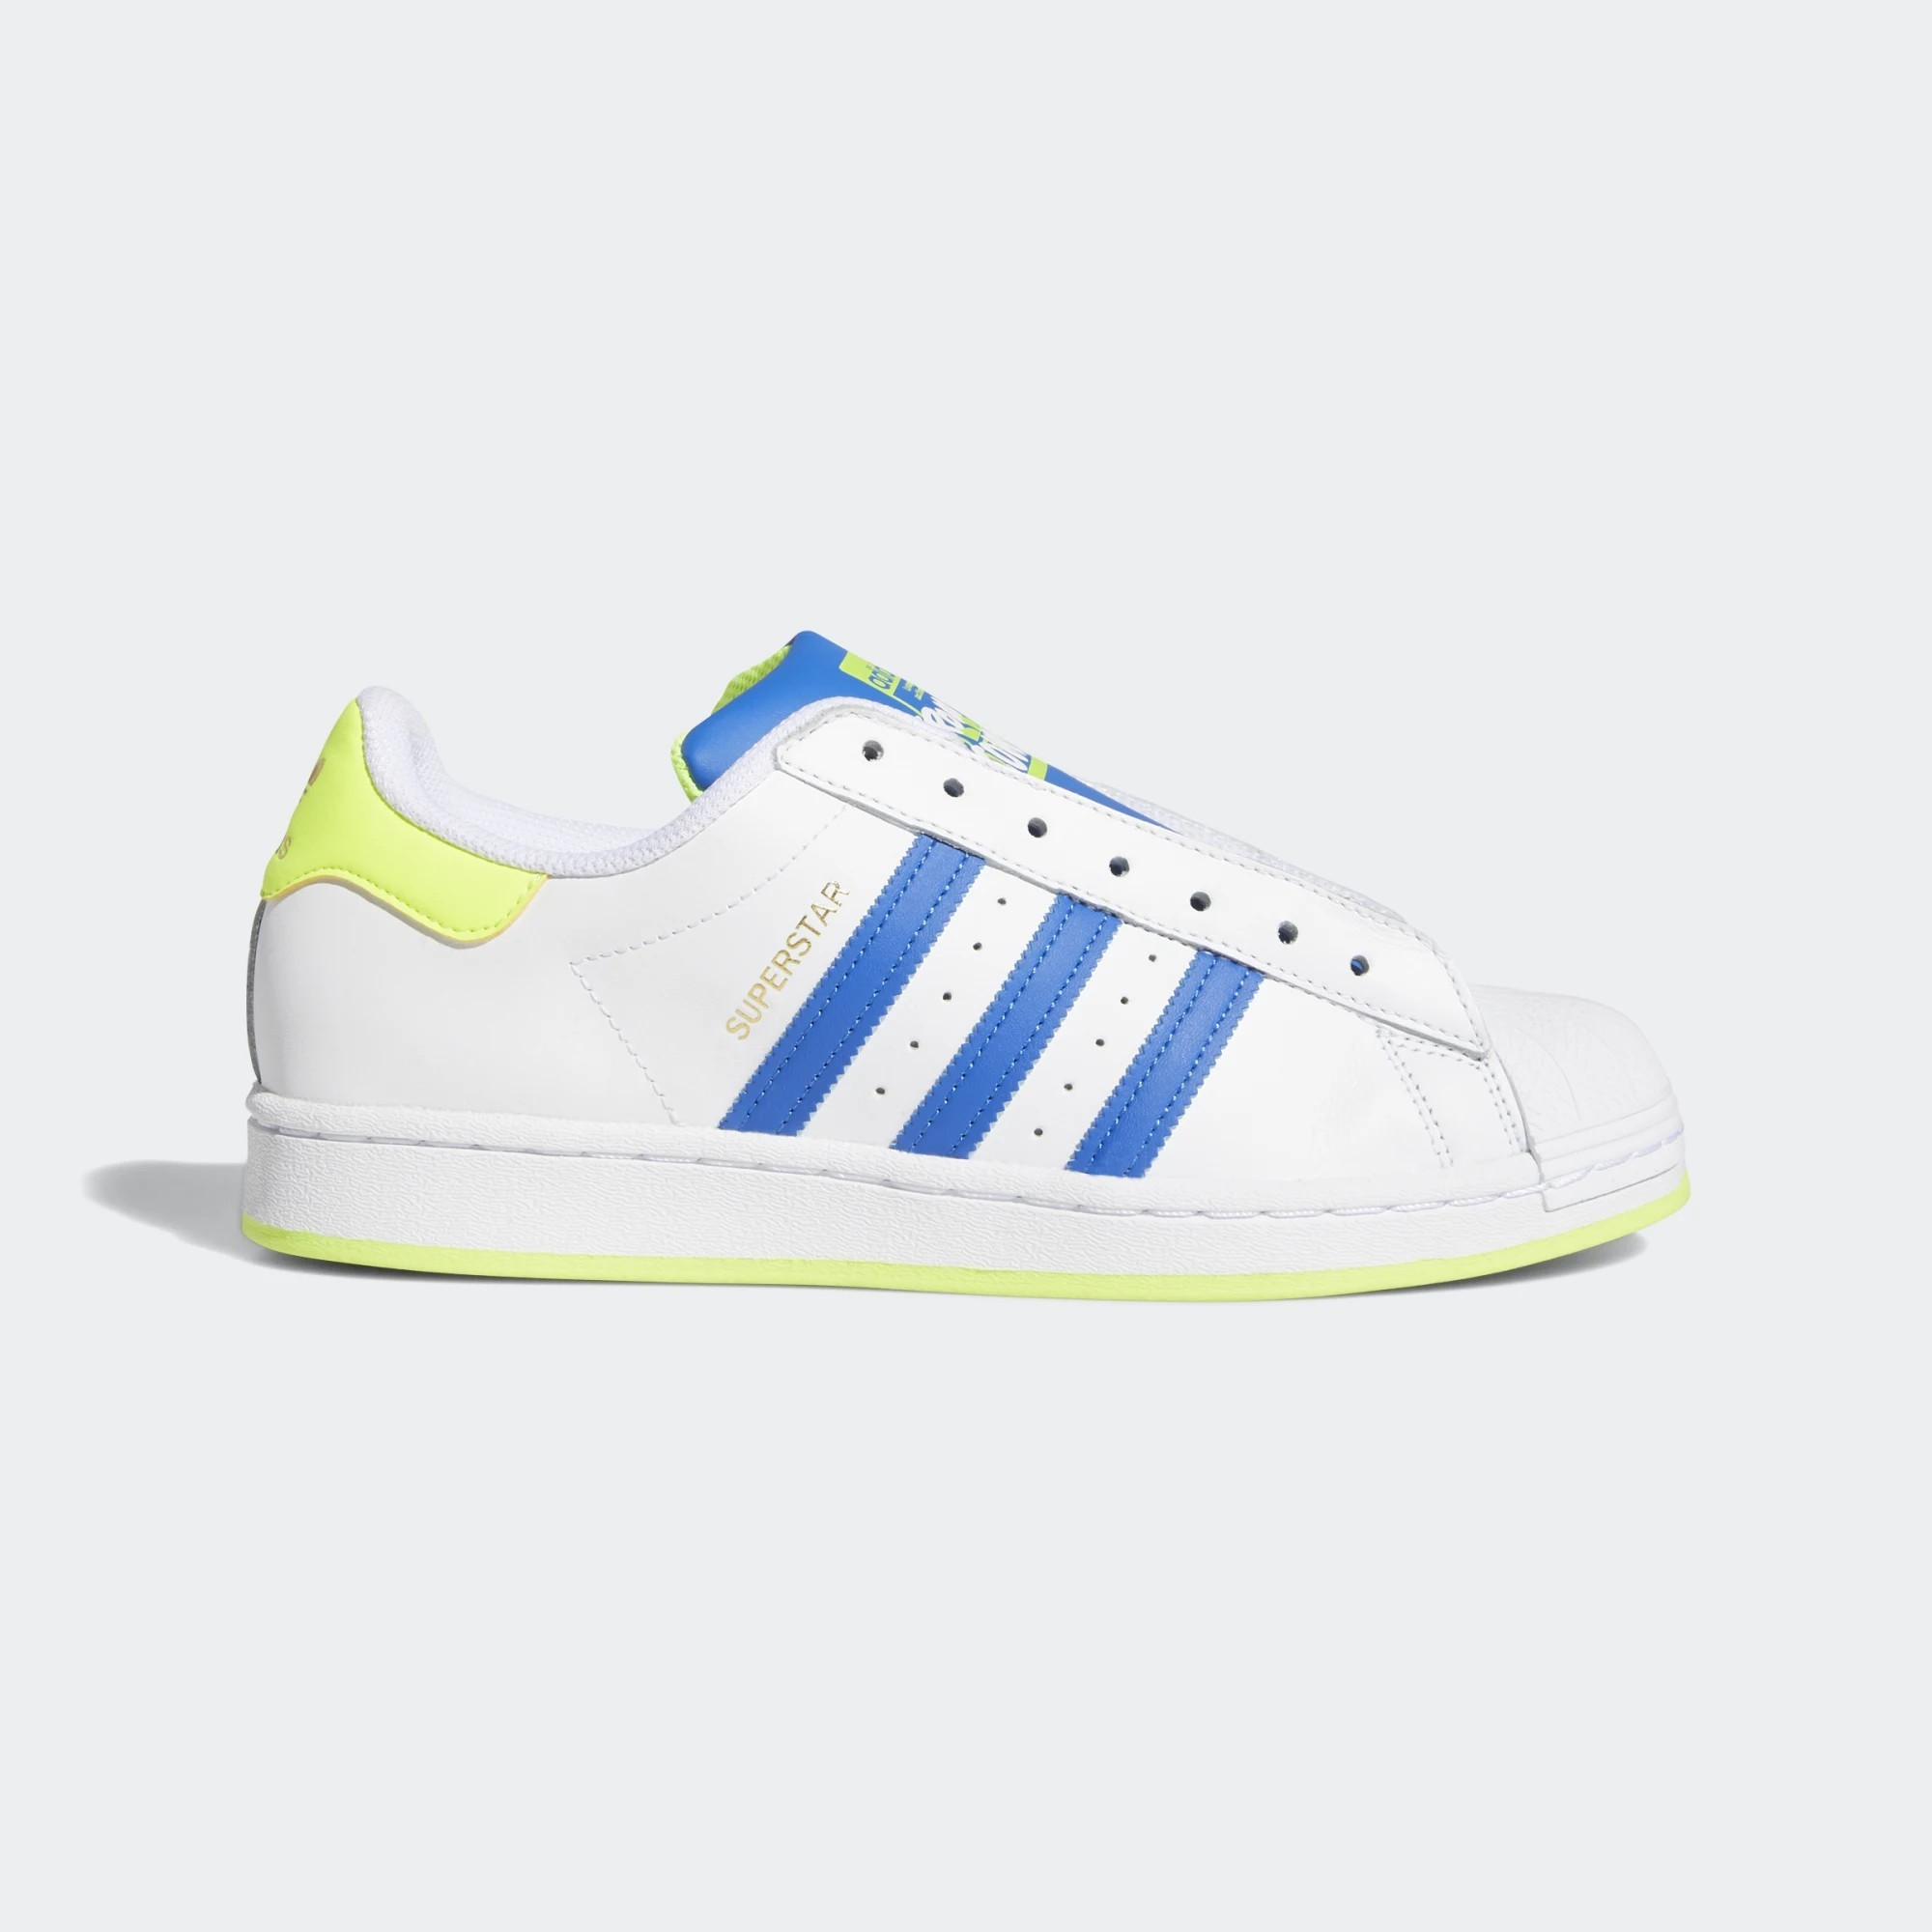 adidas Superstar Laceless Chaussures - Blanche FV3020